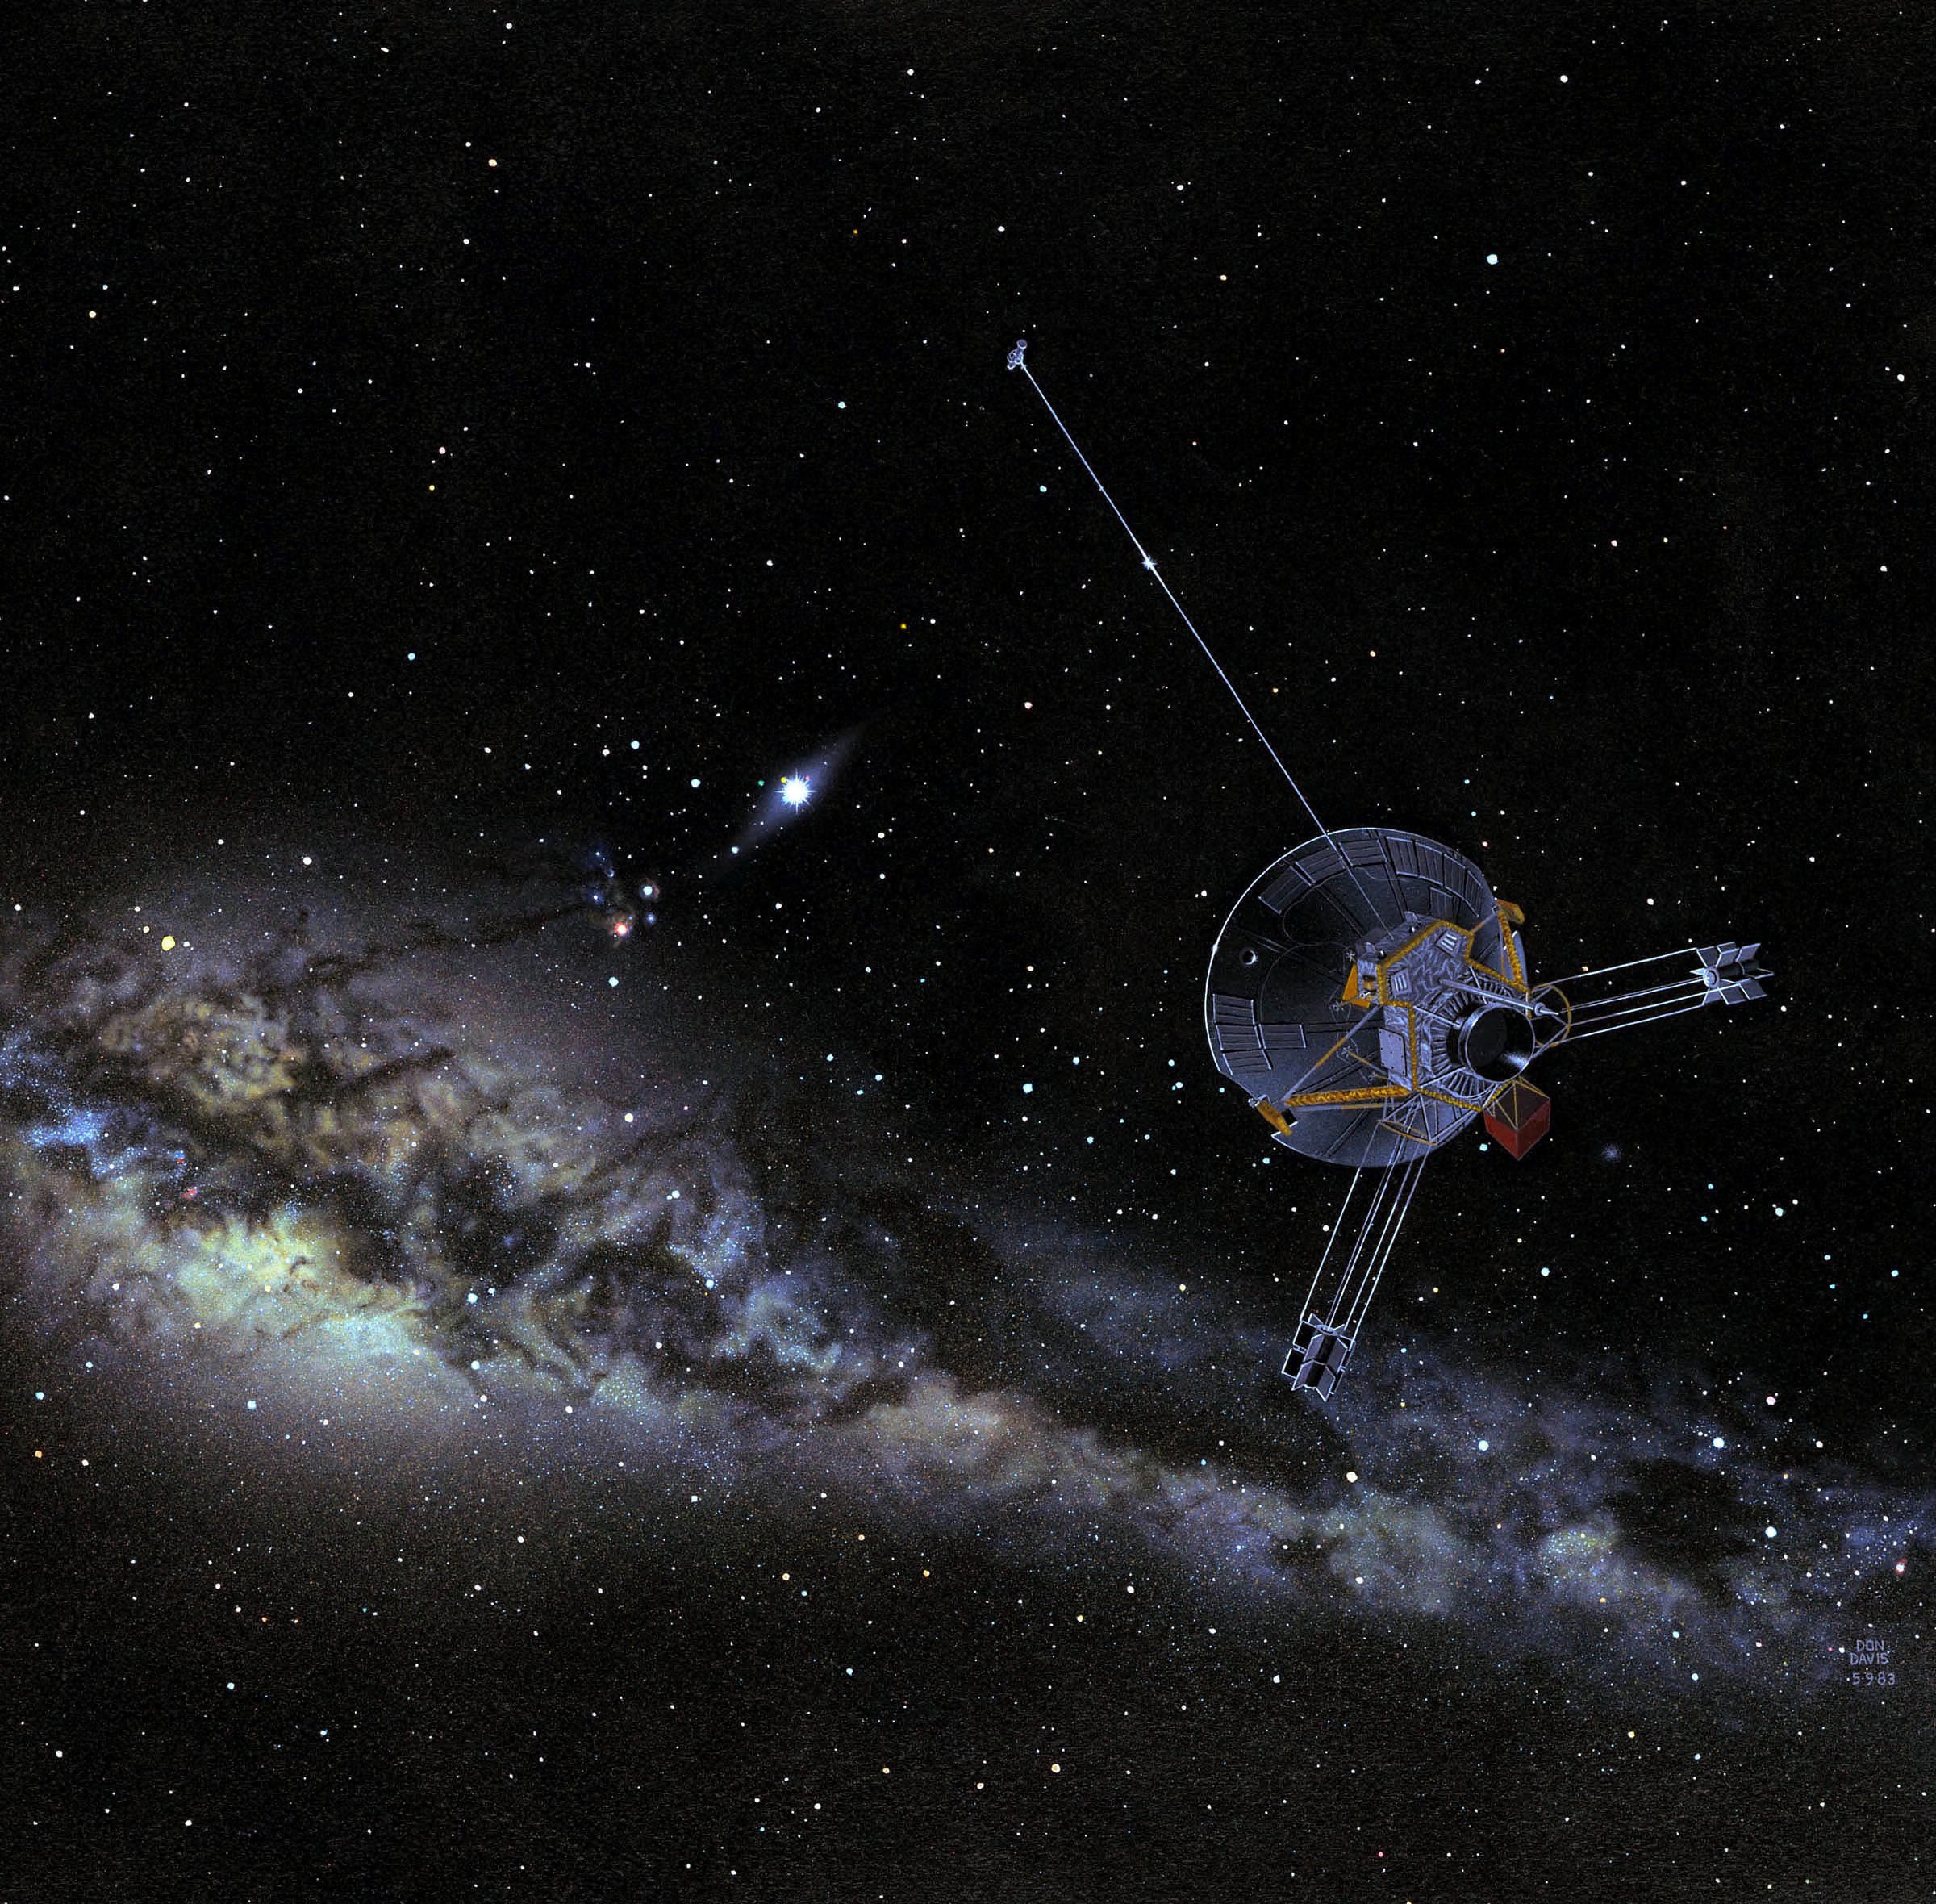 Outbound pioneer artists concept multimedia solar system download sciox Choice Image